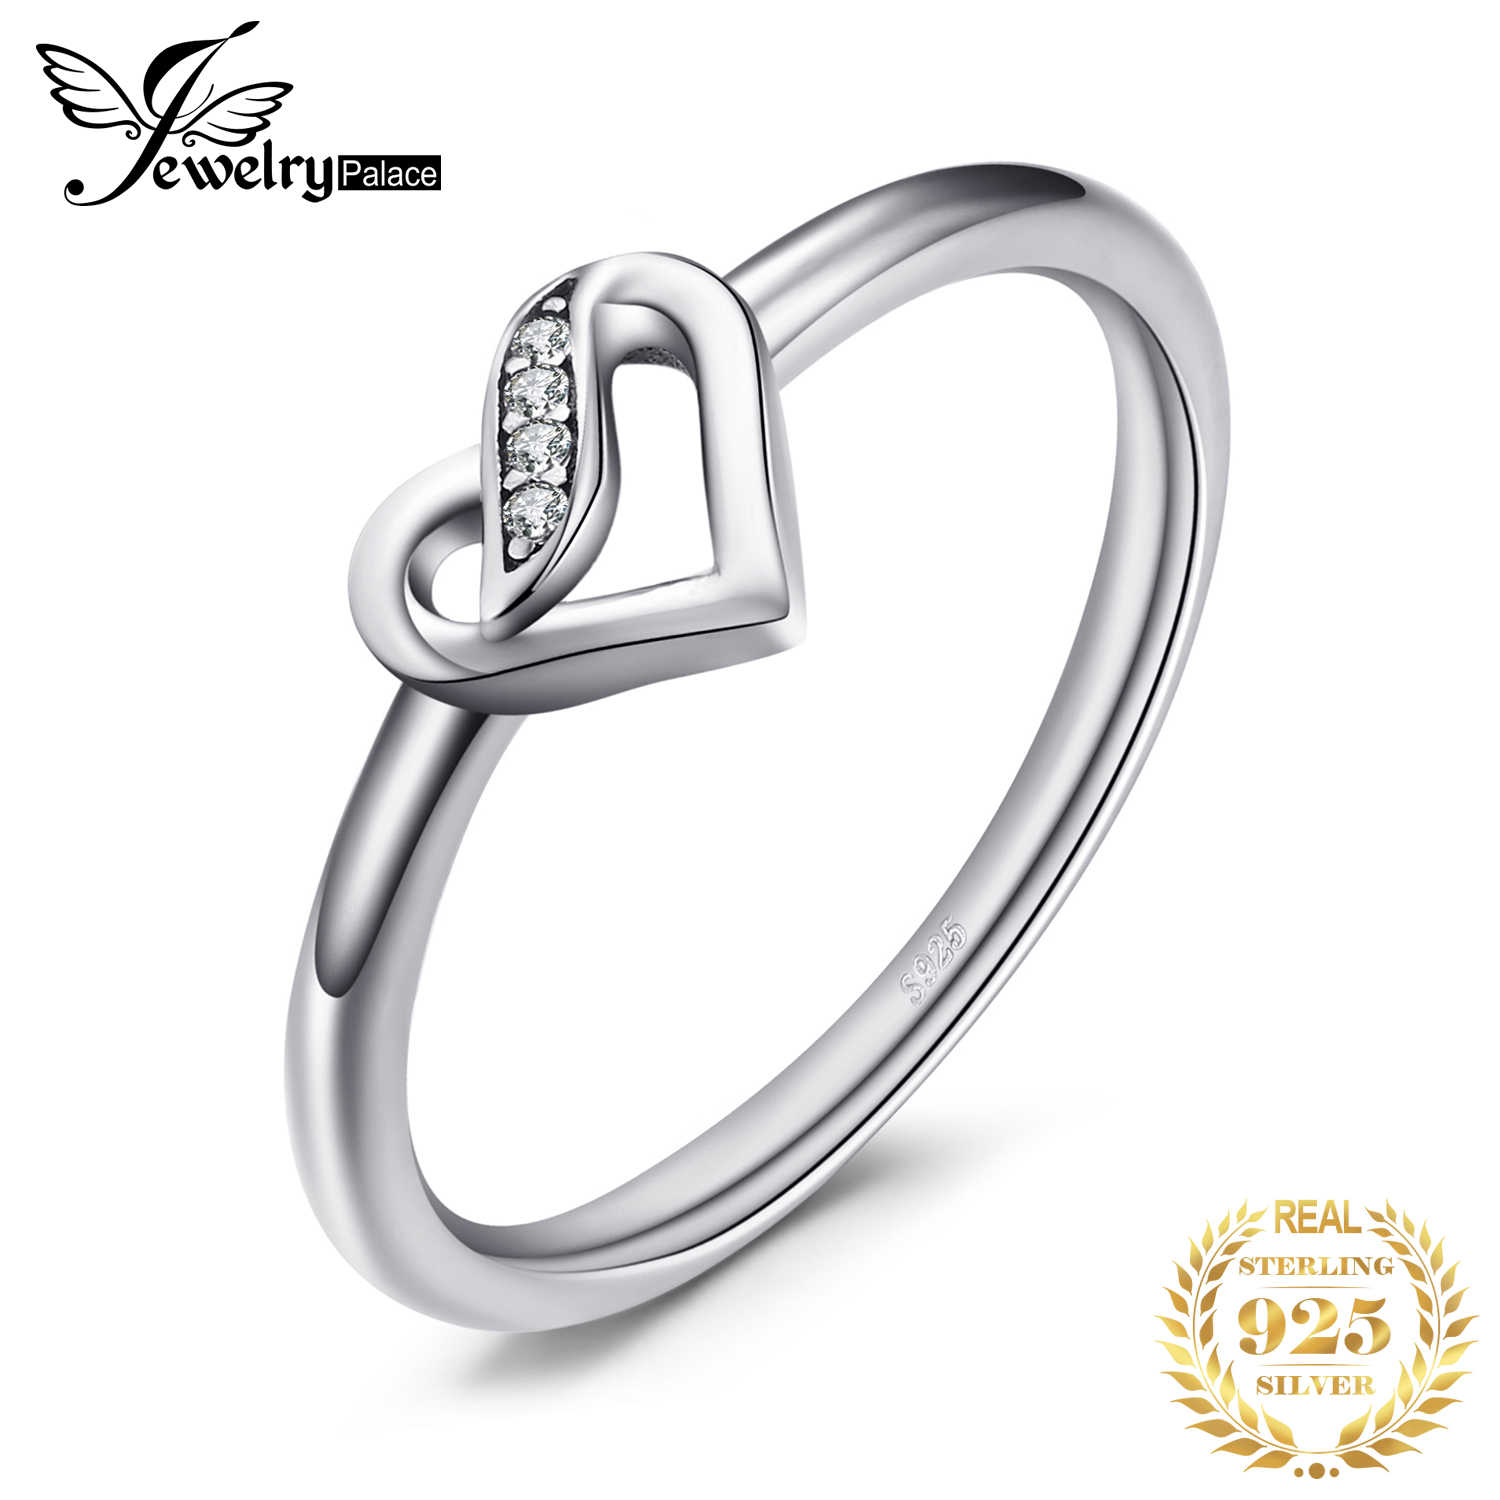 Jewelrypalace 925 Sterling Silver Finger Heart Ring 2018 New Design Ring For Women Or Girl 925 Sliver Rings Jewelry Women